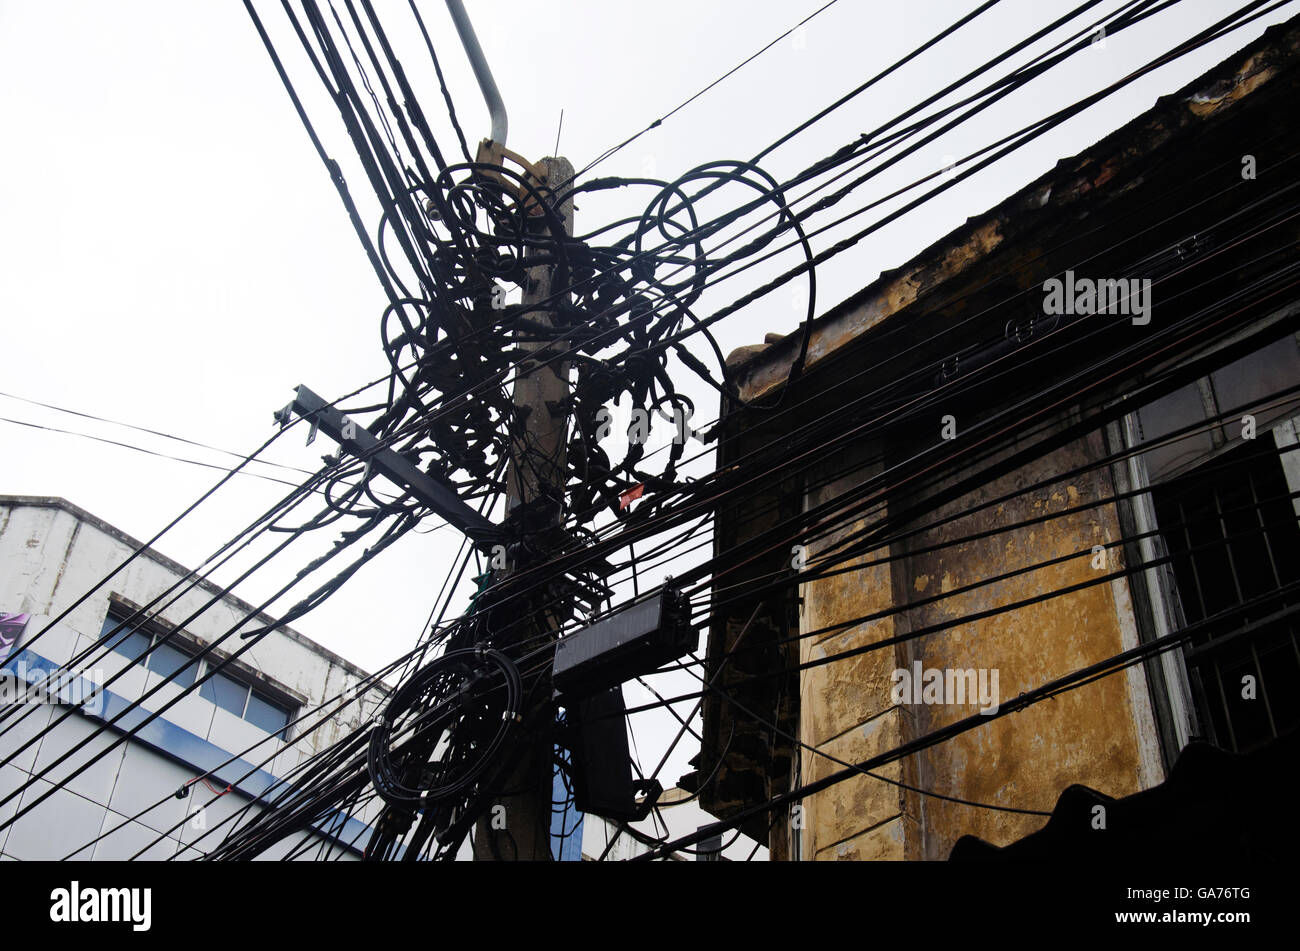 Many Wires Messy With Power Line Cables Transformers And Phone Wiring Lines On Old Electricity Pillar Or Utility Pole At Beside Road A